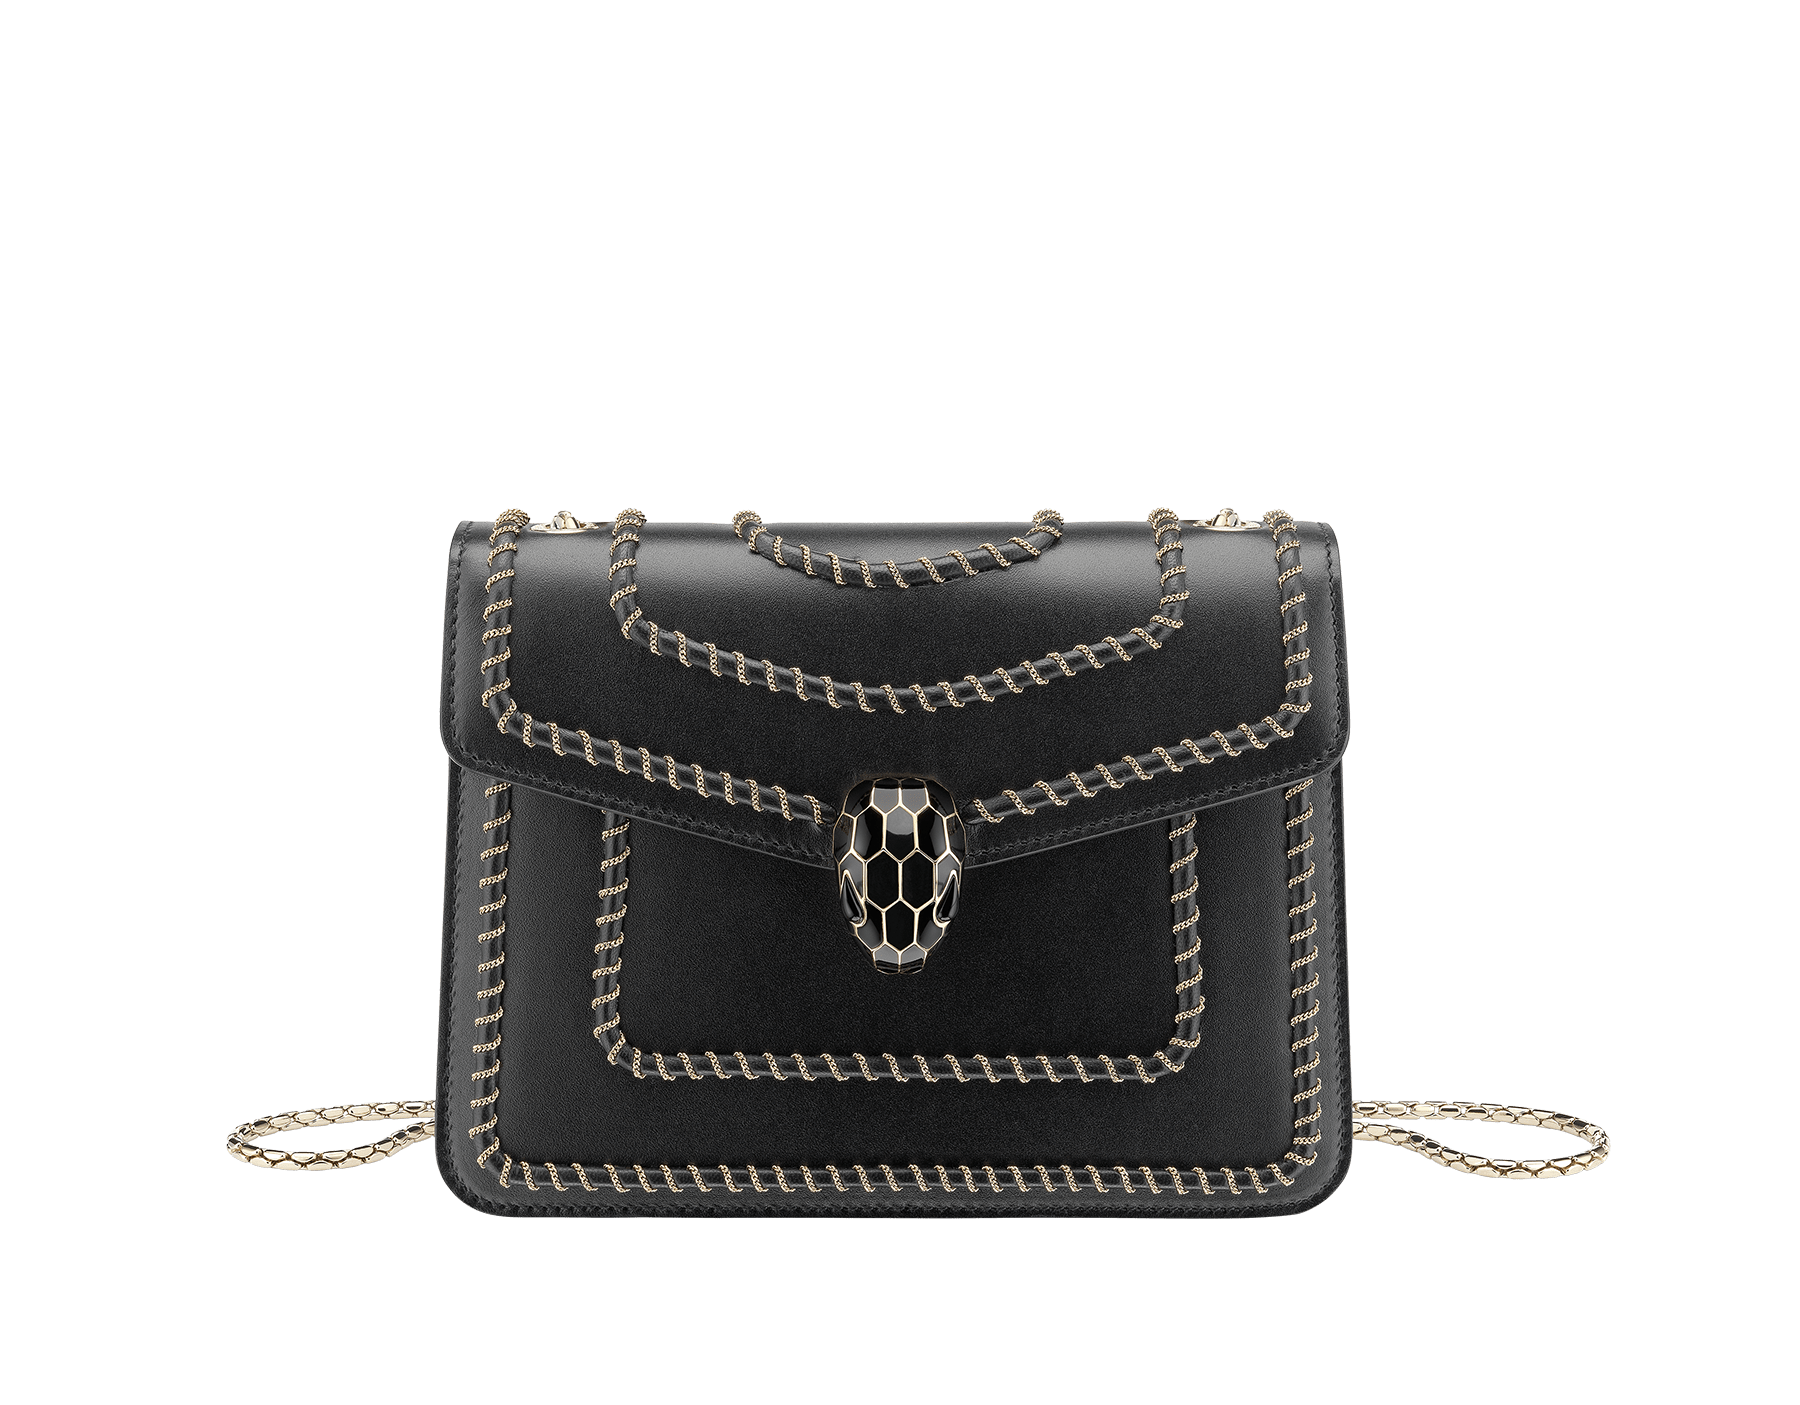 "Borsa a tracolla ""Serpenti Forever"" in vitello nero con motivo Woven Chain. Iconica chiusura Serpenti in ottone placcato oro chiaro e smalto lucido nero con occhi in onice nera. 422-WC image 1"